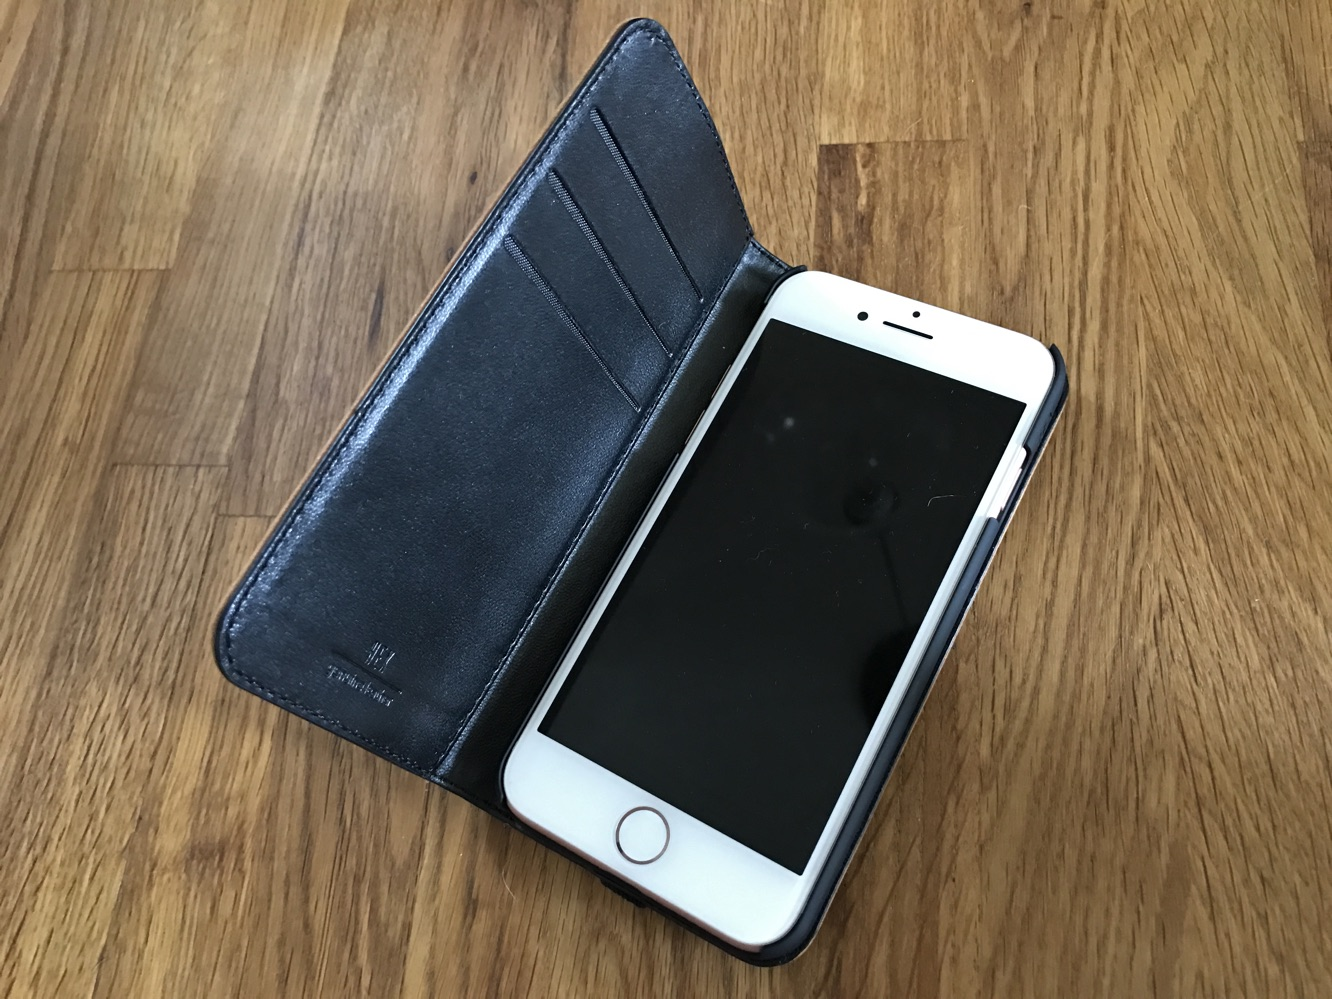 Hex Focus Case, Icon Wallet + Solo Wallet for iPhone 7/7 Plus